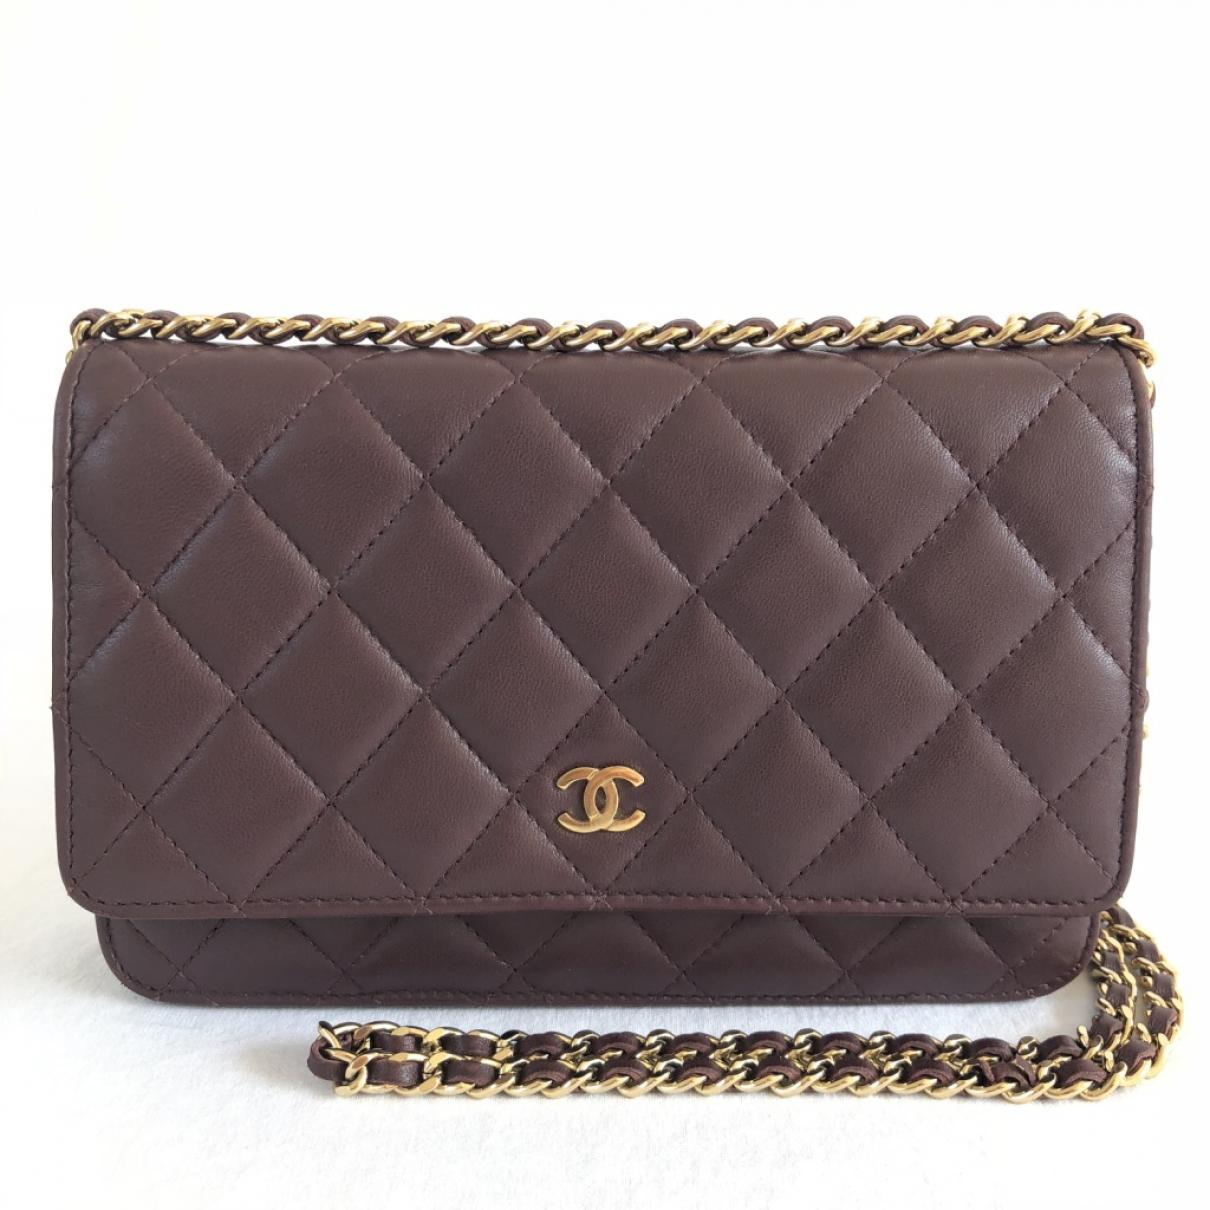 Pre-owned - Wallet on Chain python clutch bag Chanel f2PvZDY